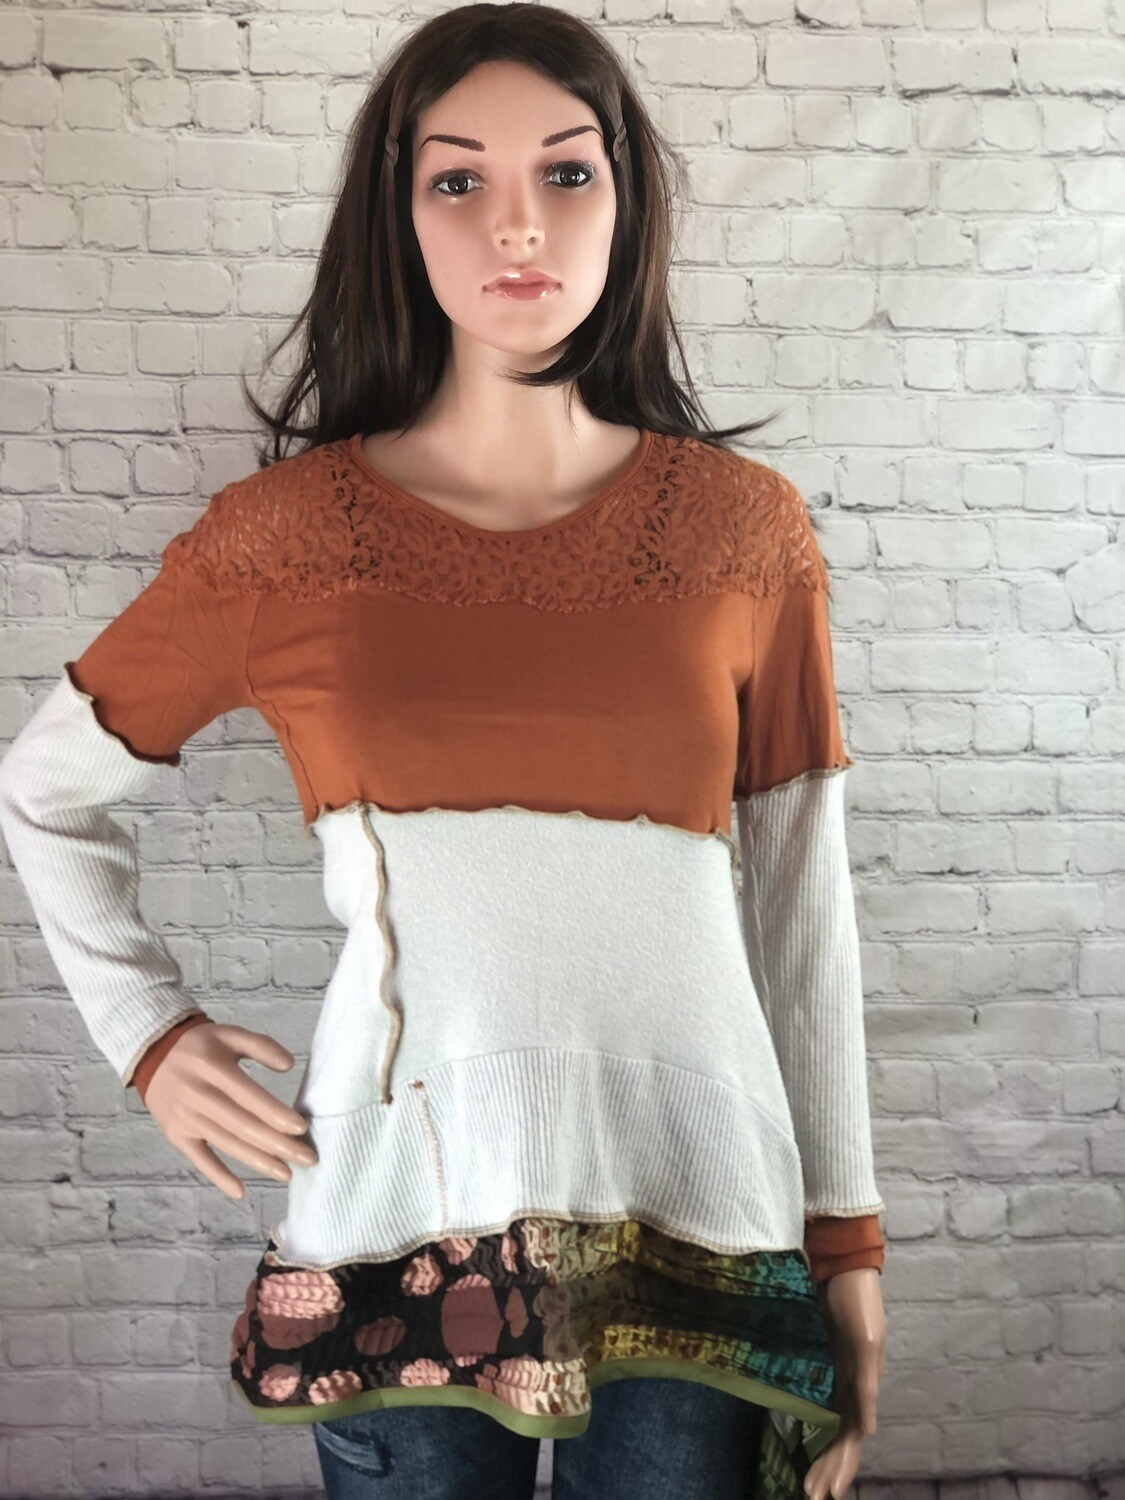 S Threads Boutique Sustainable Fashion Unique A-line Sweater Lace Sheer Scarf Knit Top Boho OOAK Size Small